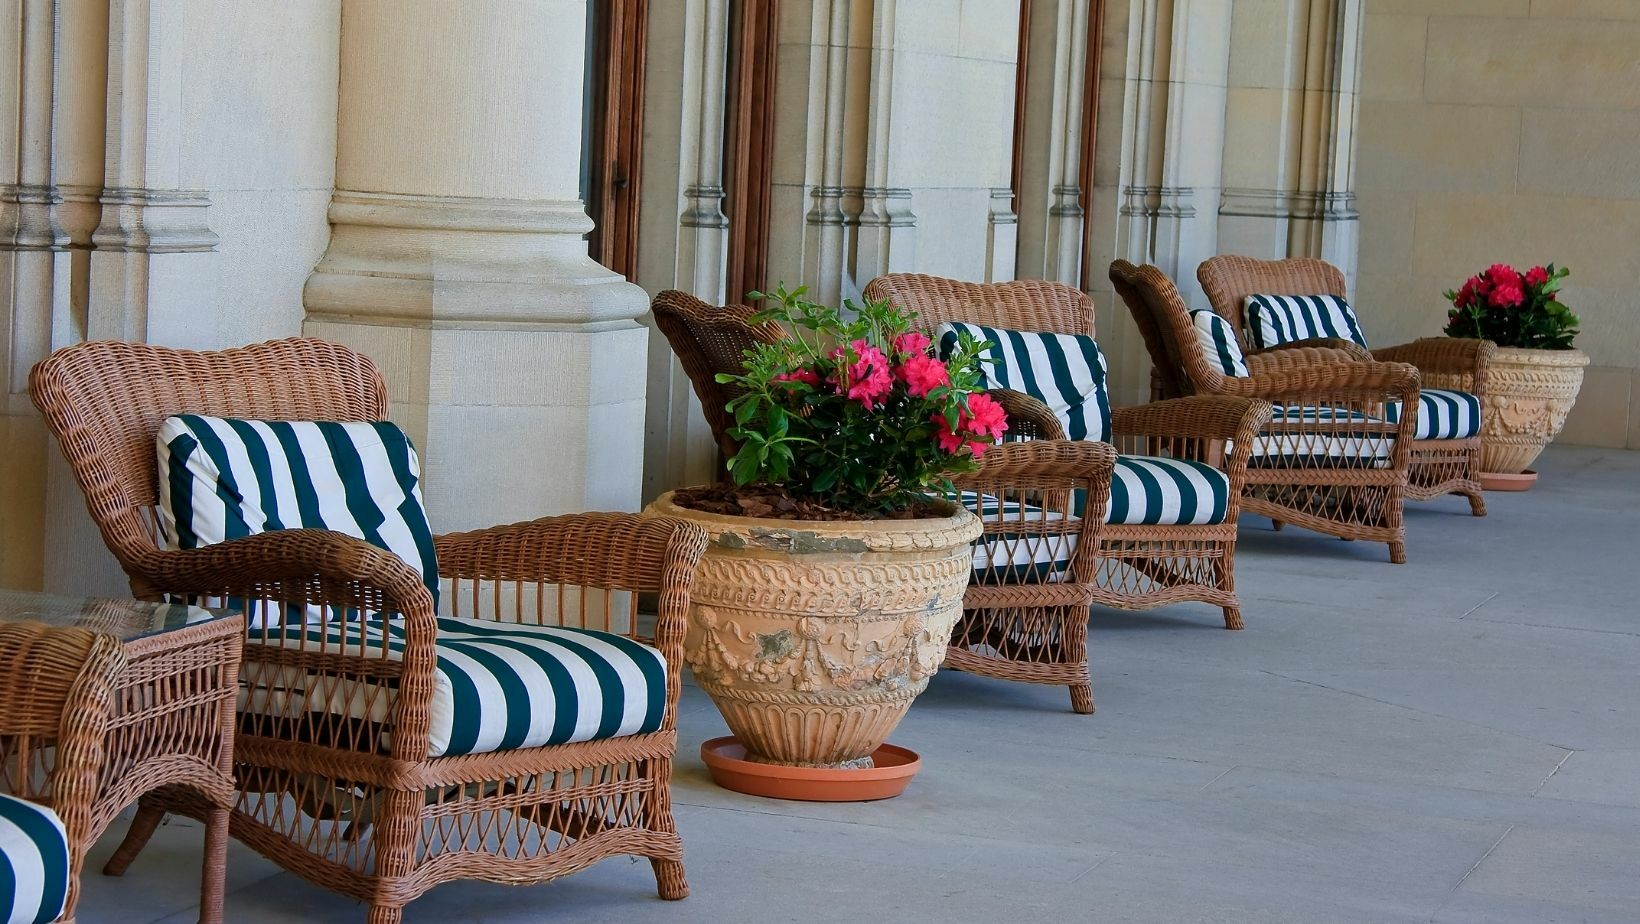 Wicker and Rattan Furniture